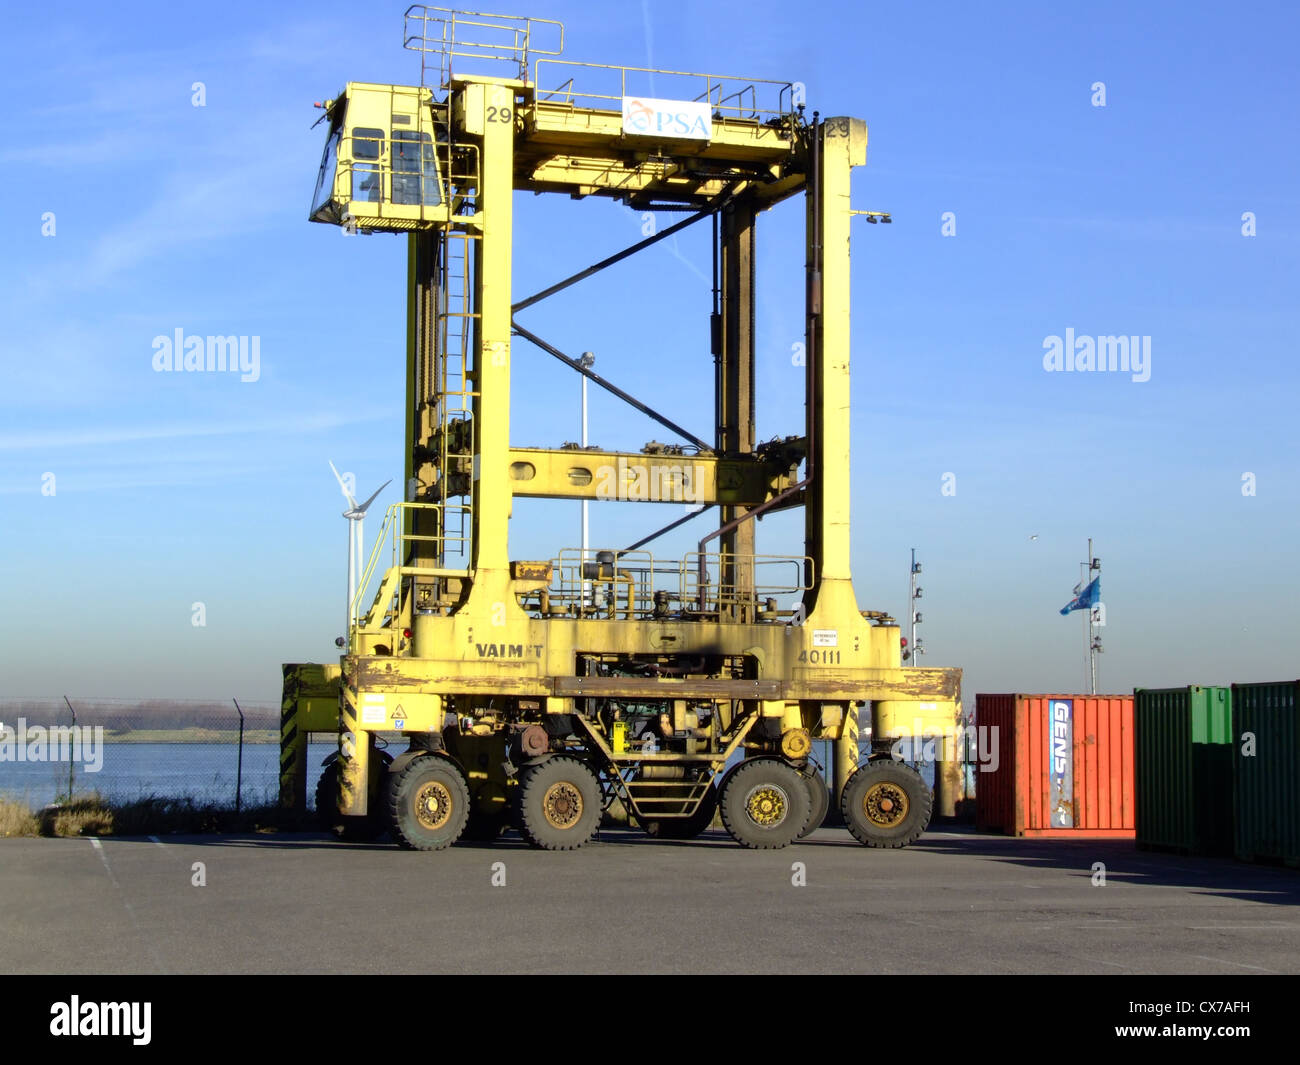 Sisu valmet 44011 straddle carrier container mover stock image